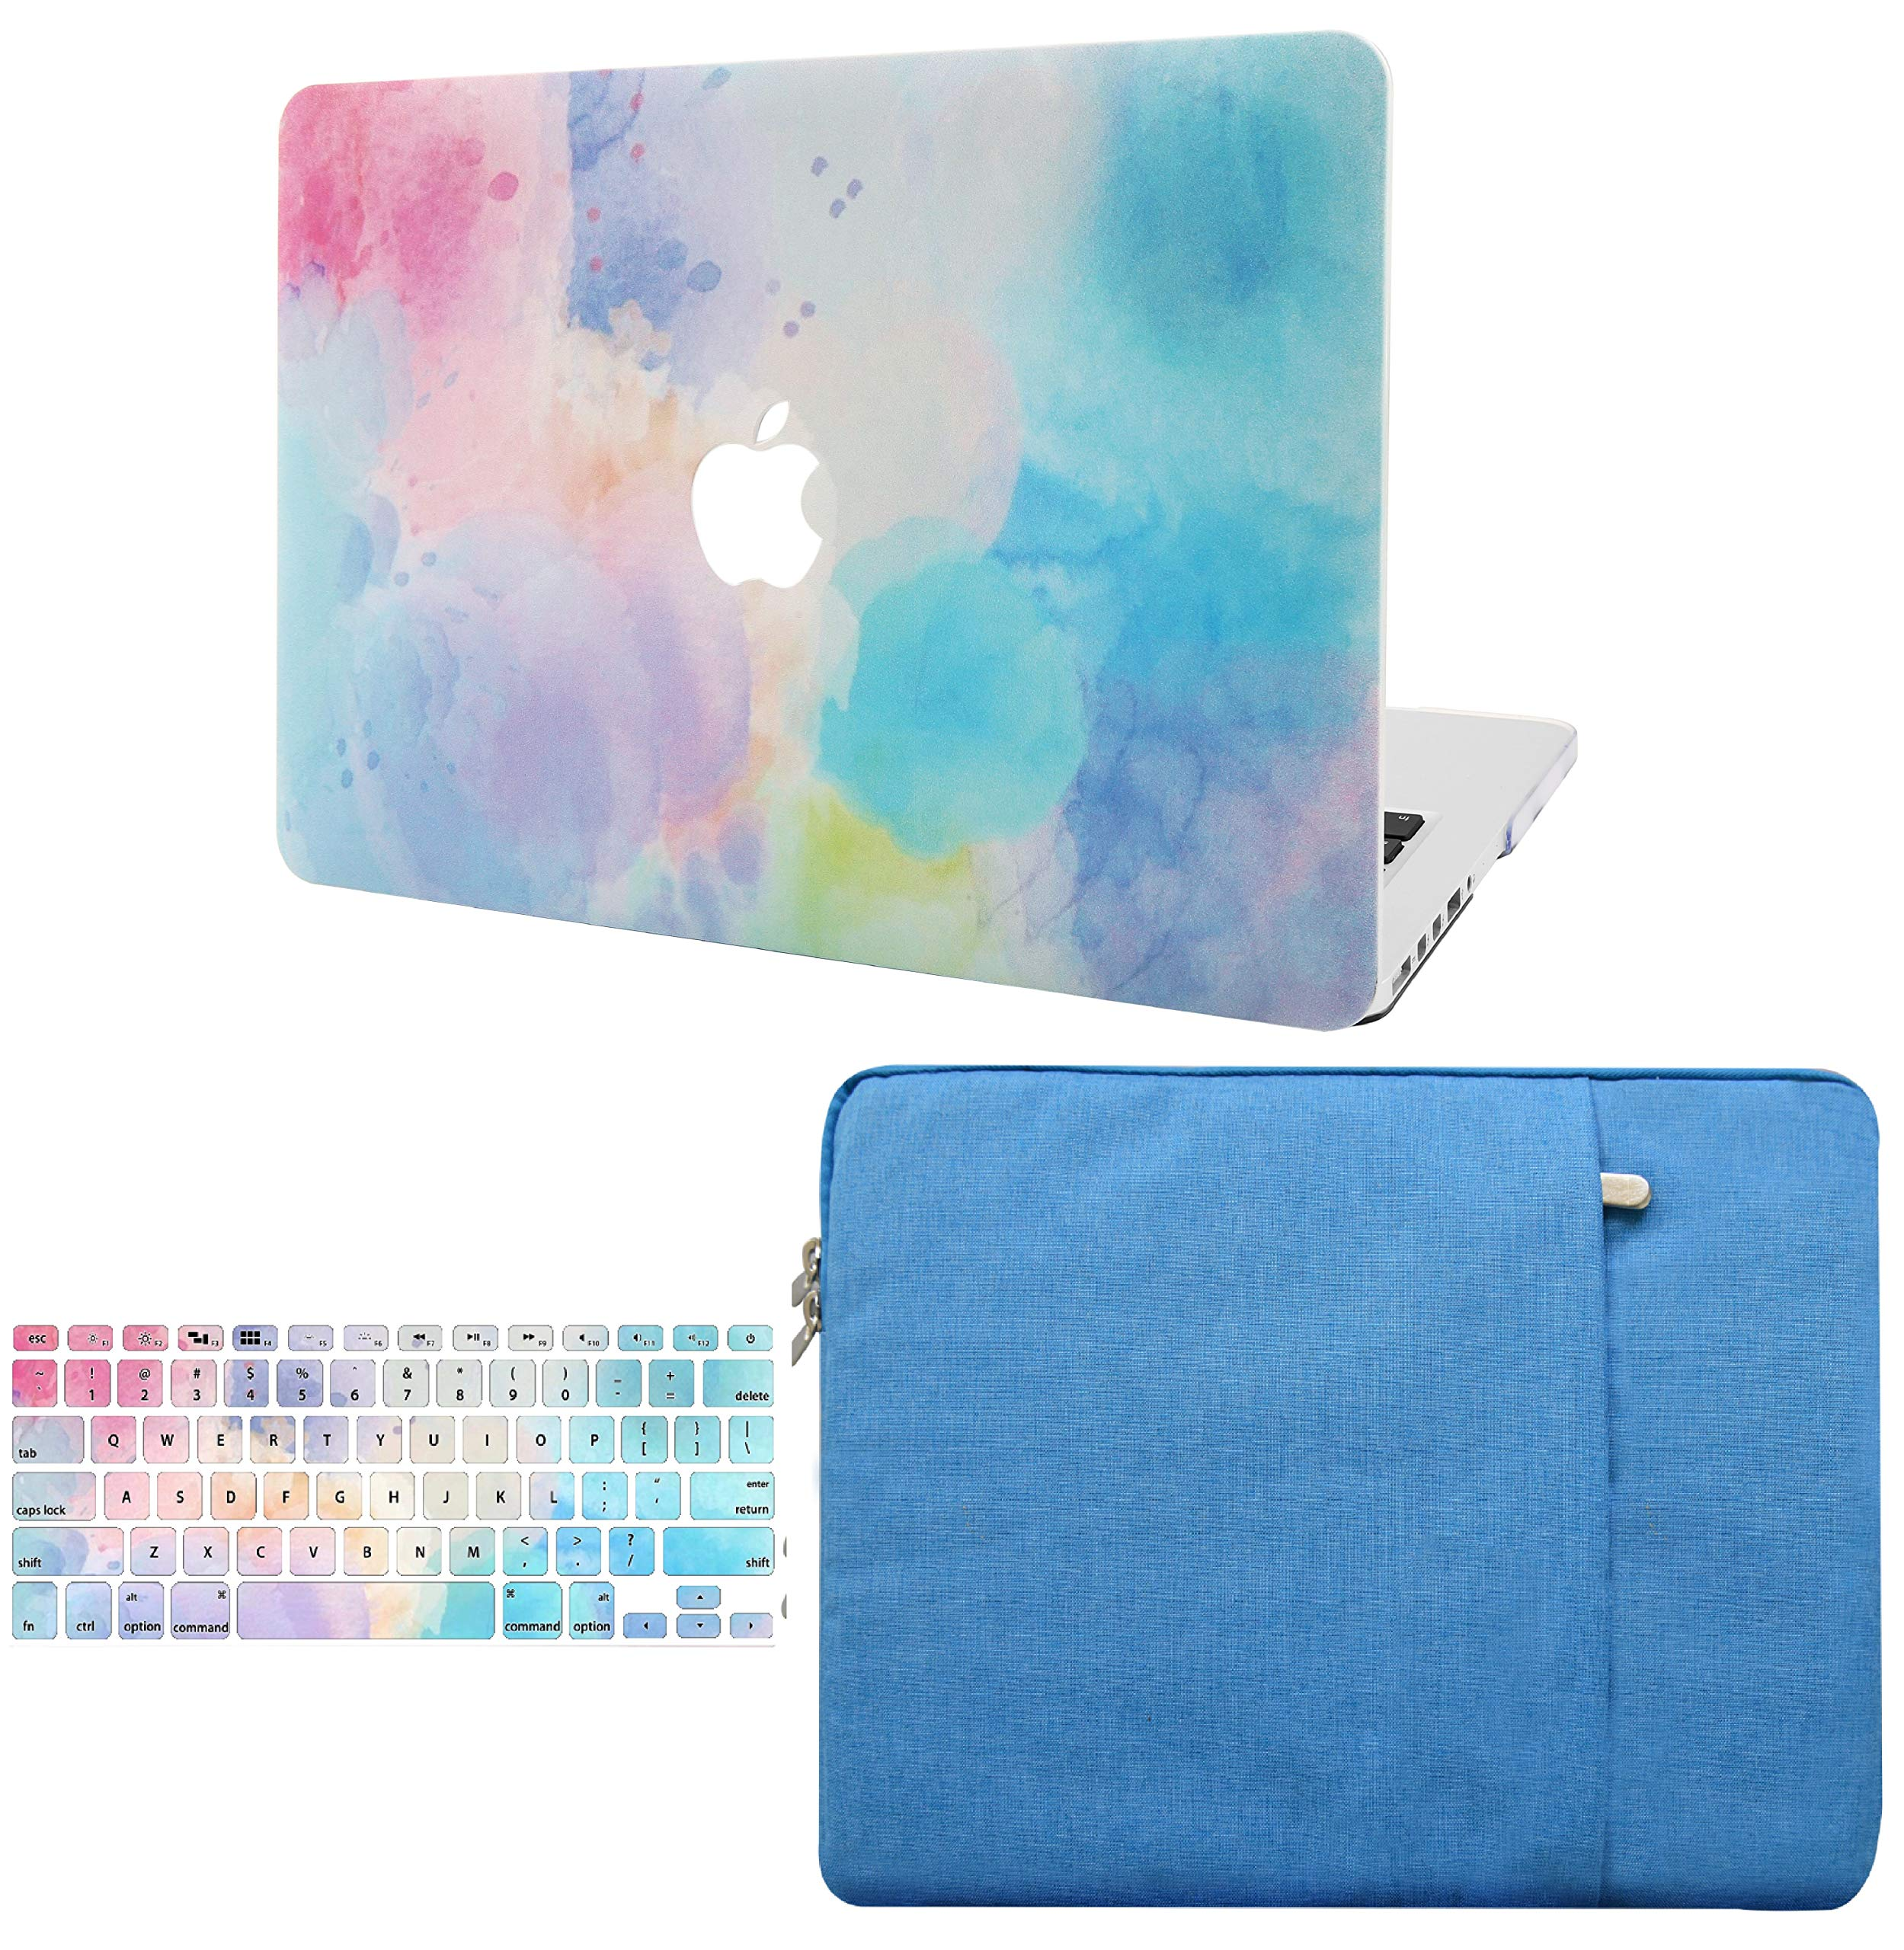 KEC Laptop Case for MacBook Air 13'' w/ Keyboard Cover + Sleeve Plastic Hard Shell Case A1466/A1369  3 in Bundle (Rainbow Mist 2)  by KEC (Image #1)